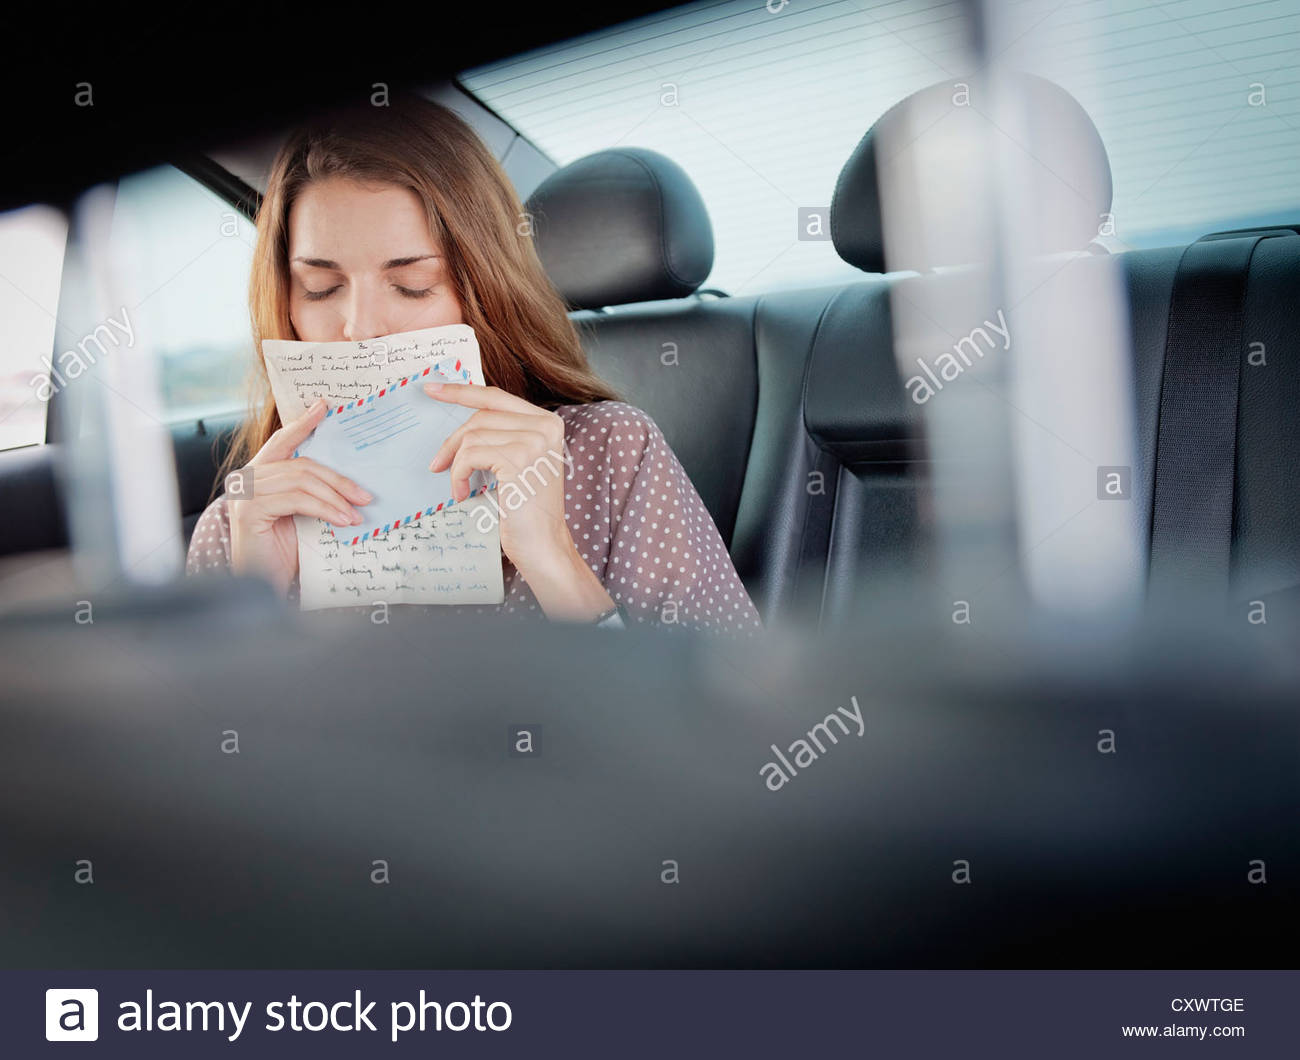 Woman kissing lettre in backseat of car Photo Stock